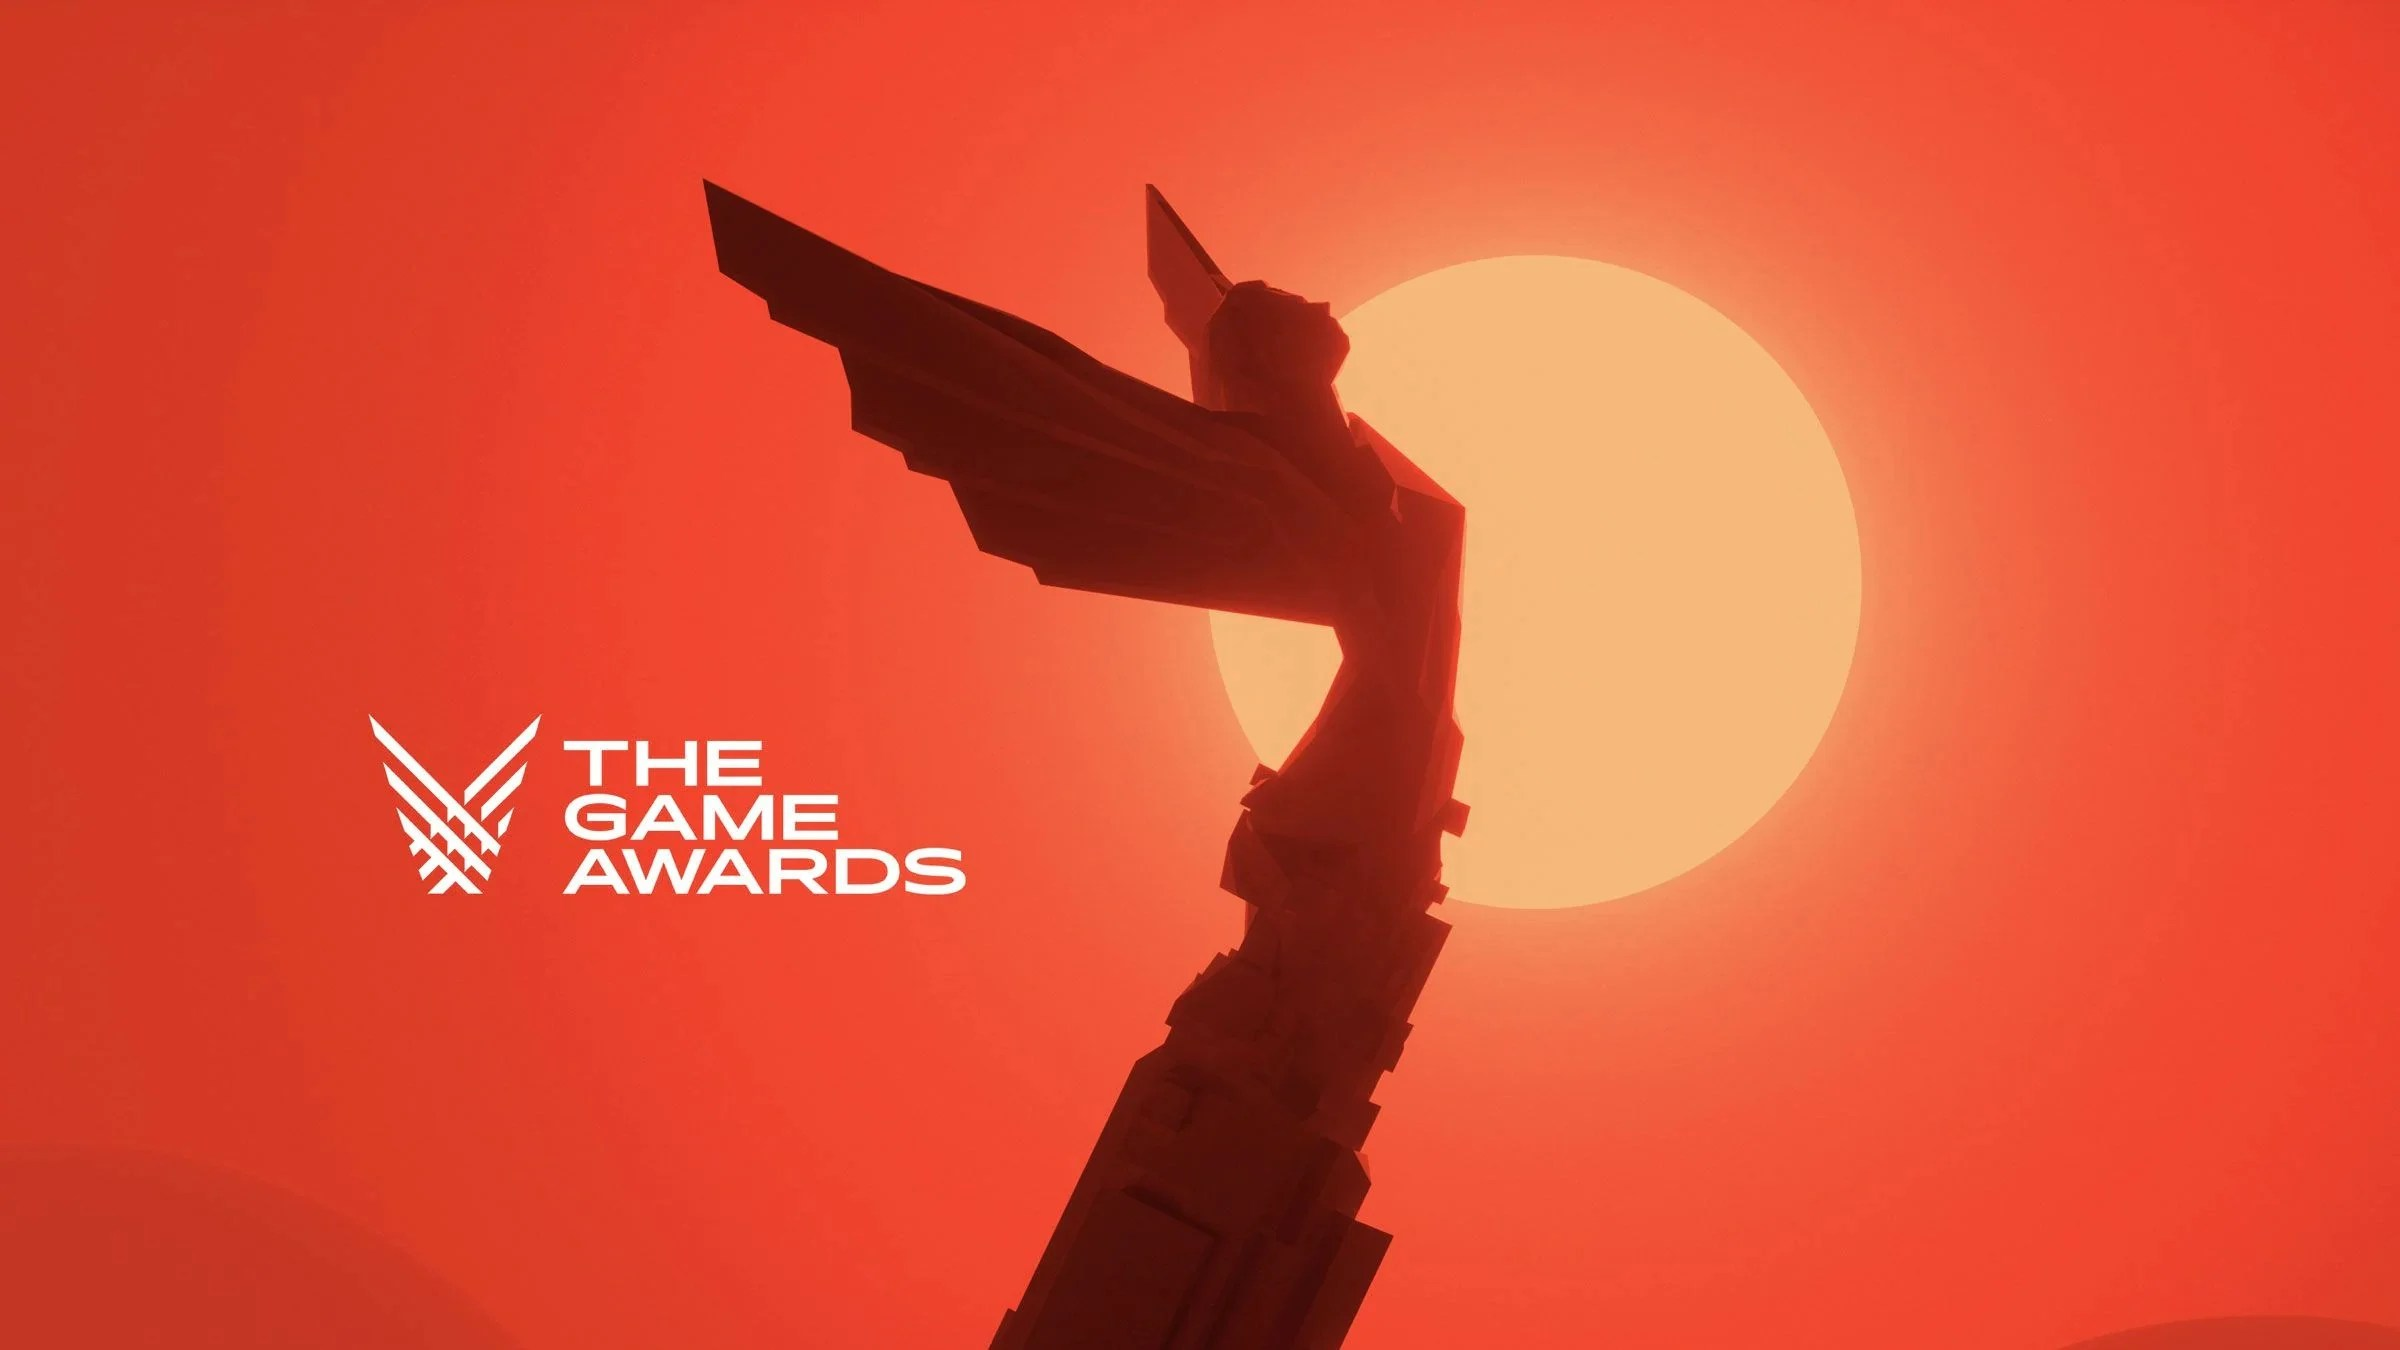 The Game Awards 2020 featured image